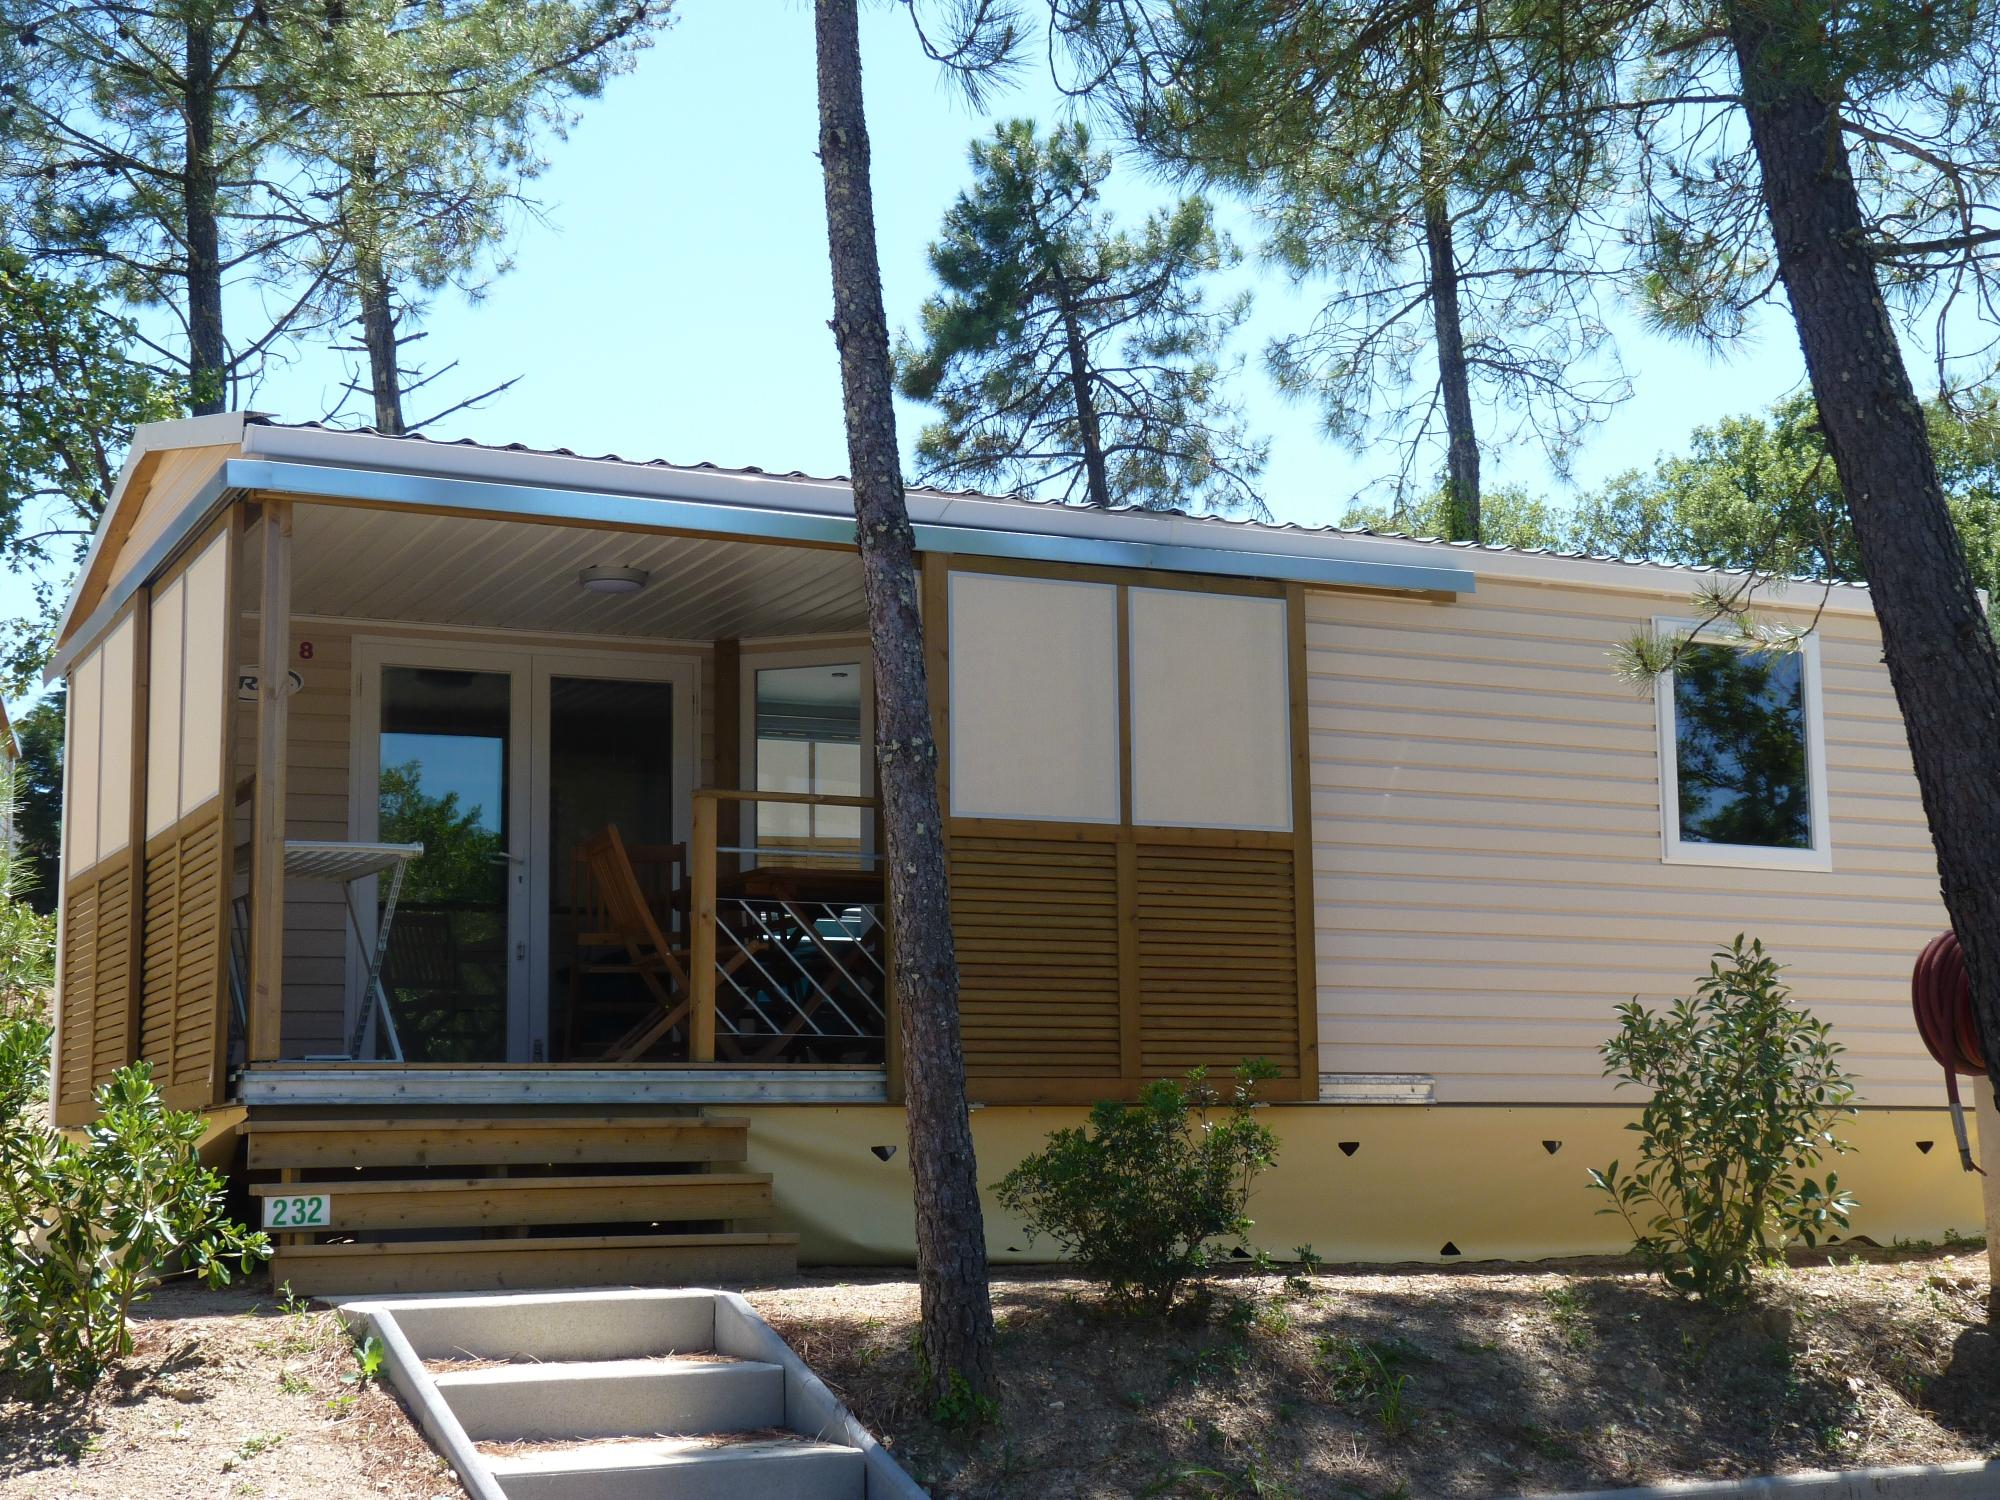 Camping L'argentiere